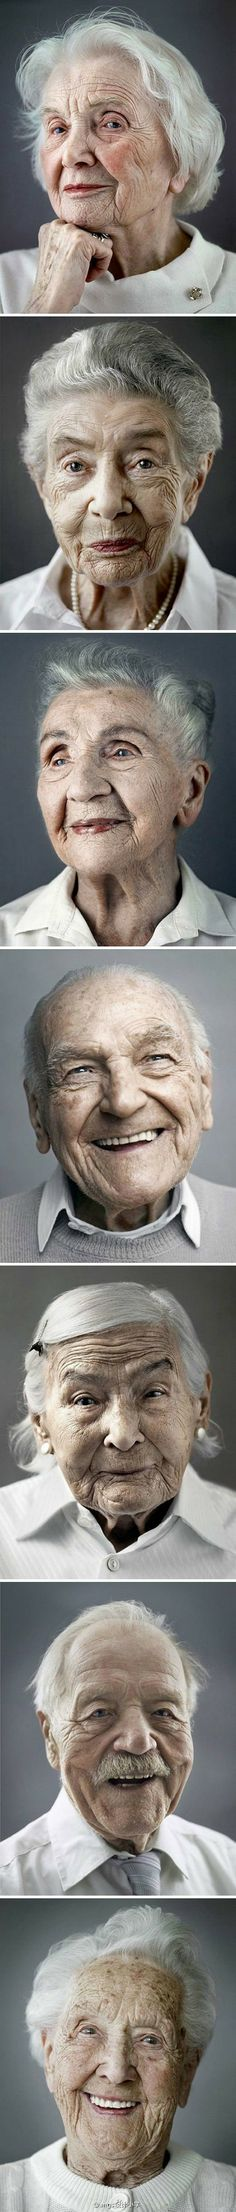 """100 years old! """"Happy at One Hundred"""" - Photos by  Karsten Thormaehlen. °"""